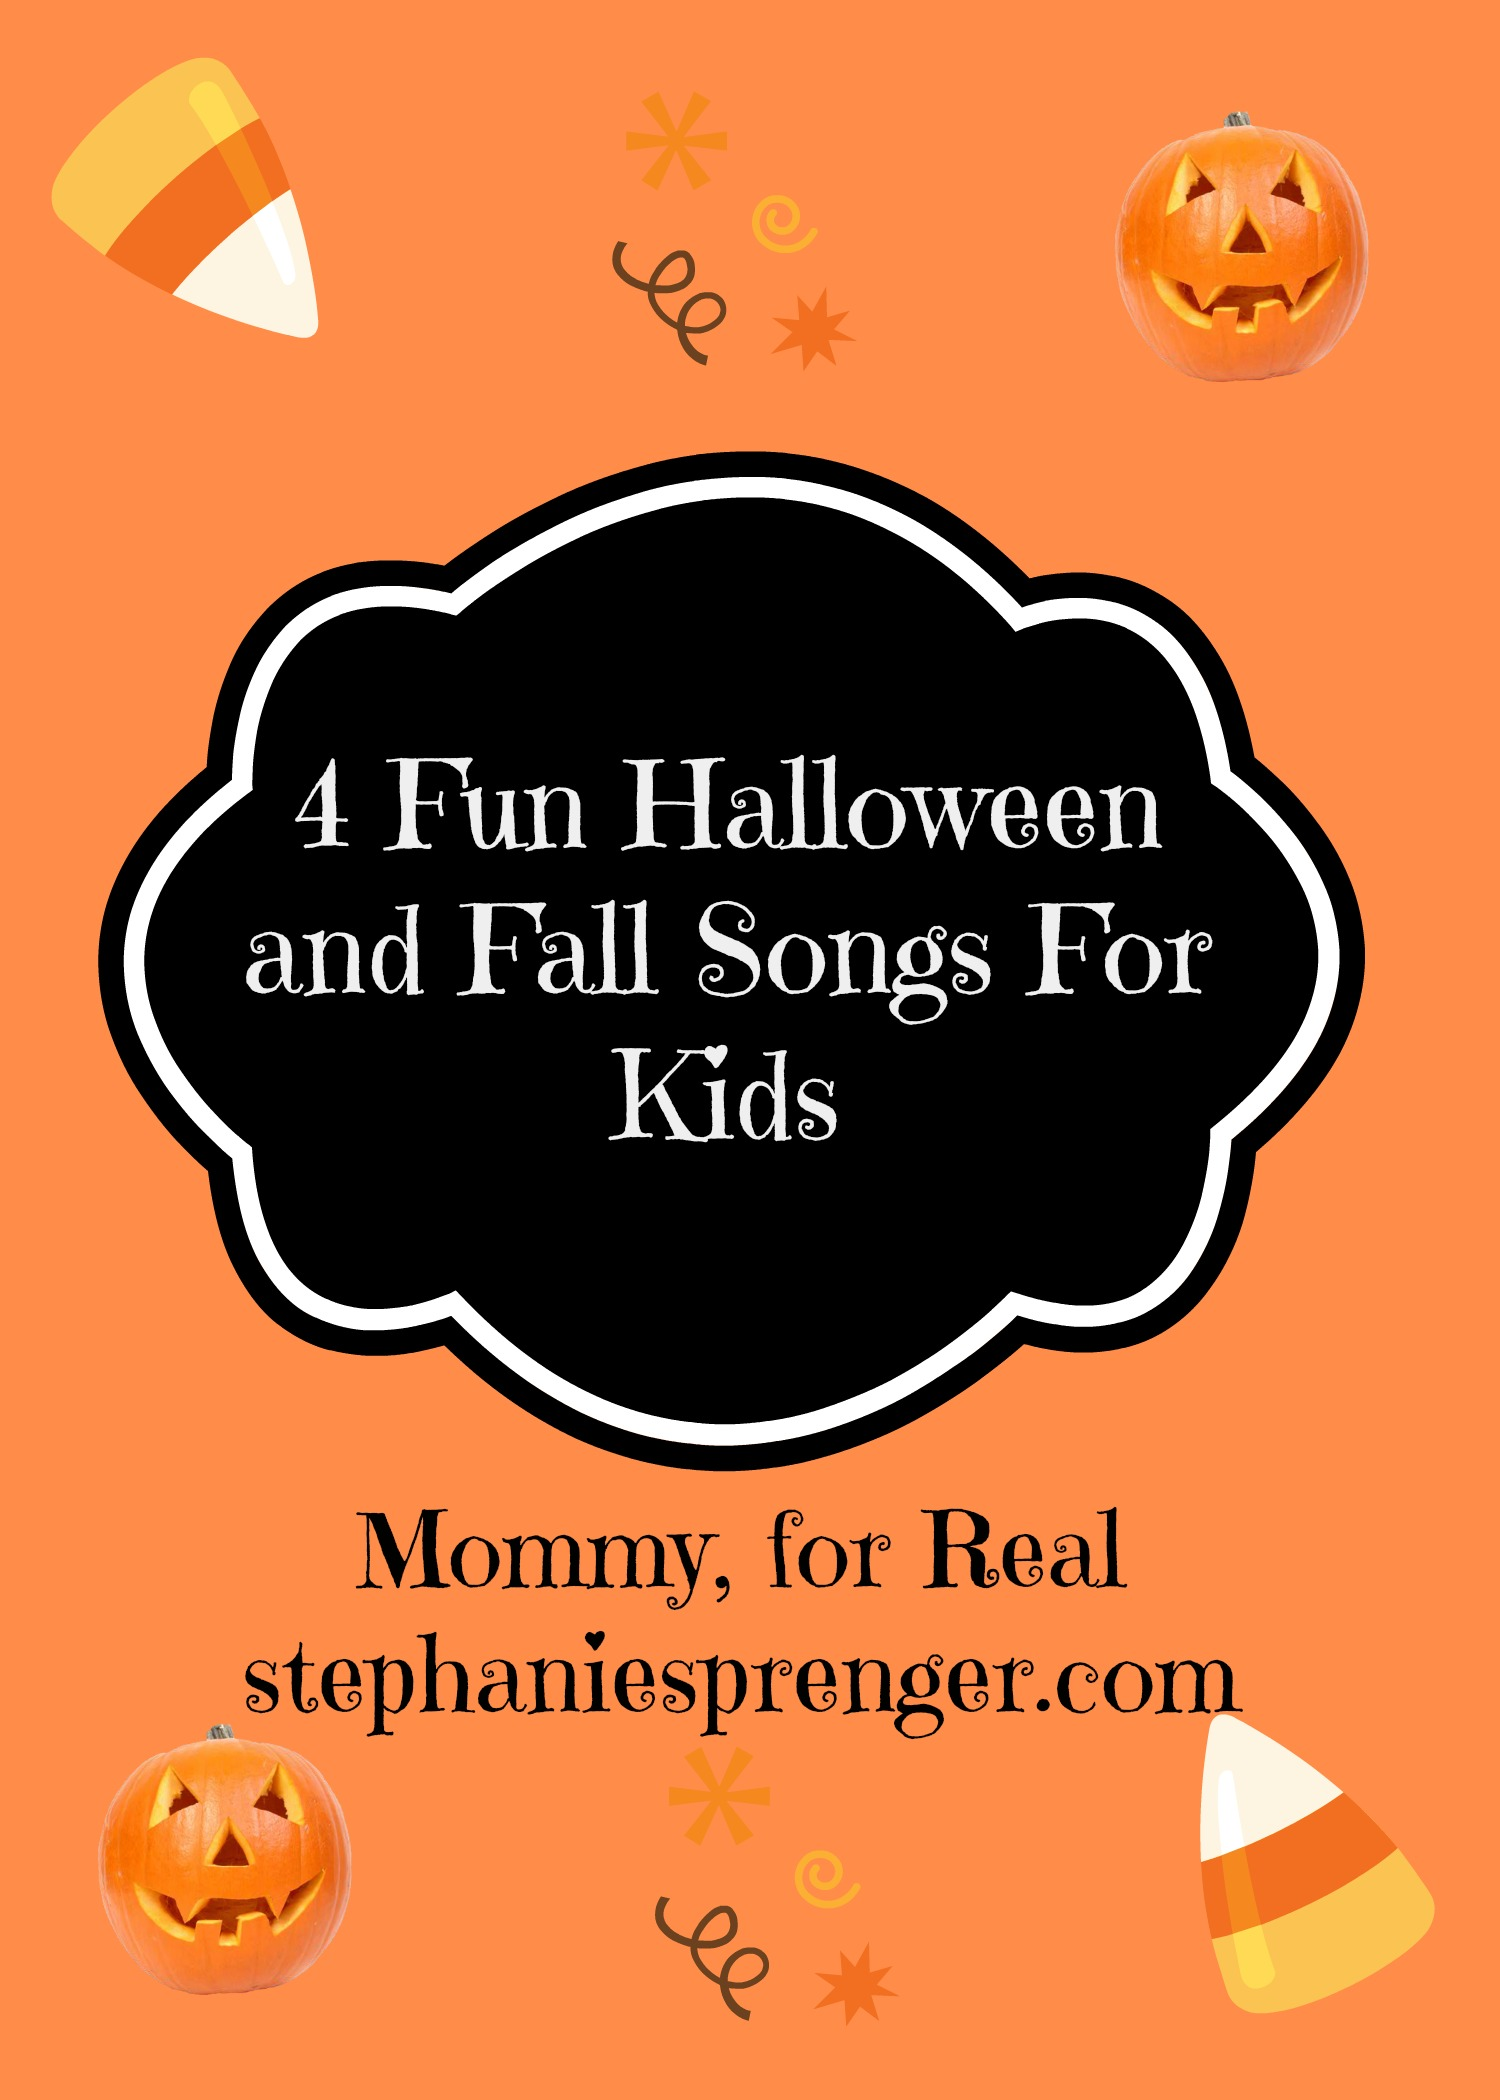 Fun Fall and Halloween Songs for Kids - Mommy, For Real